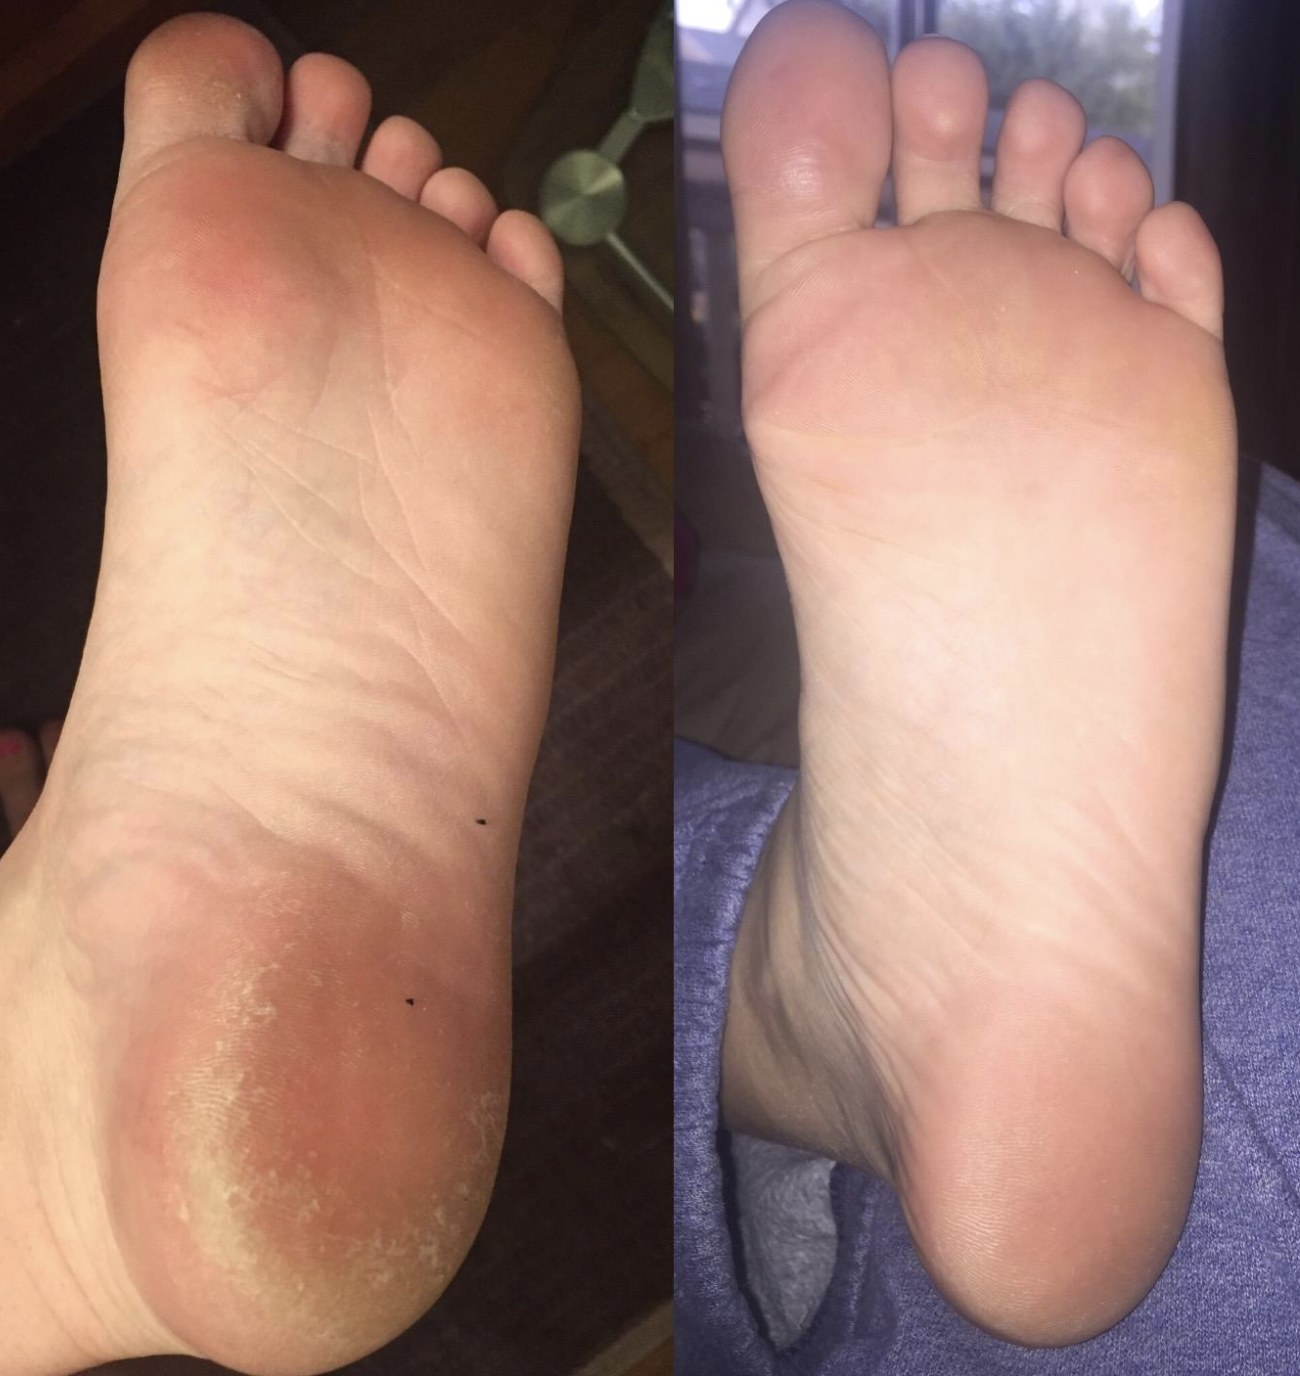 a foot before and after the peel mask